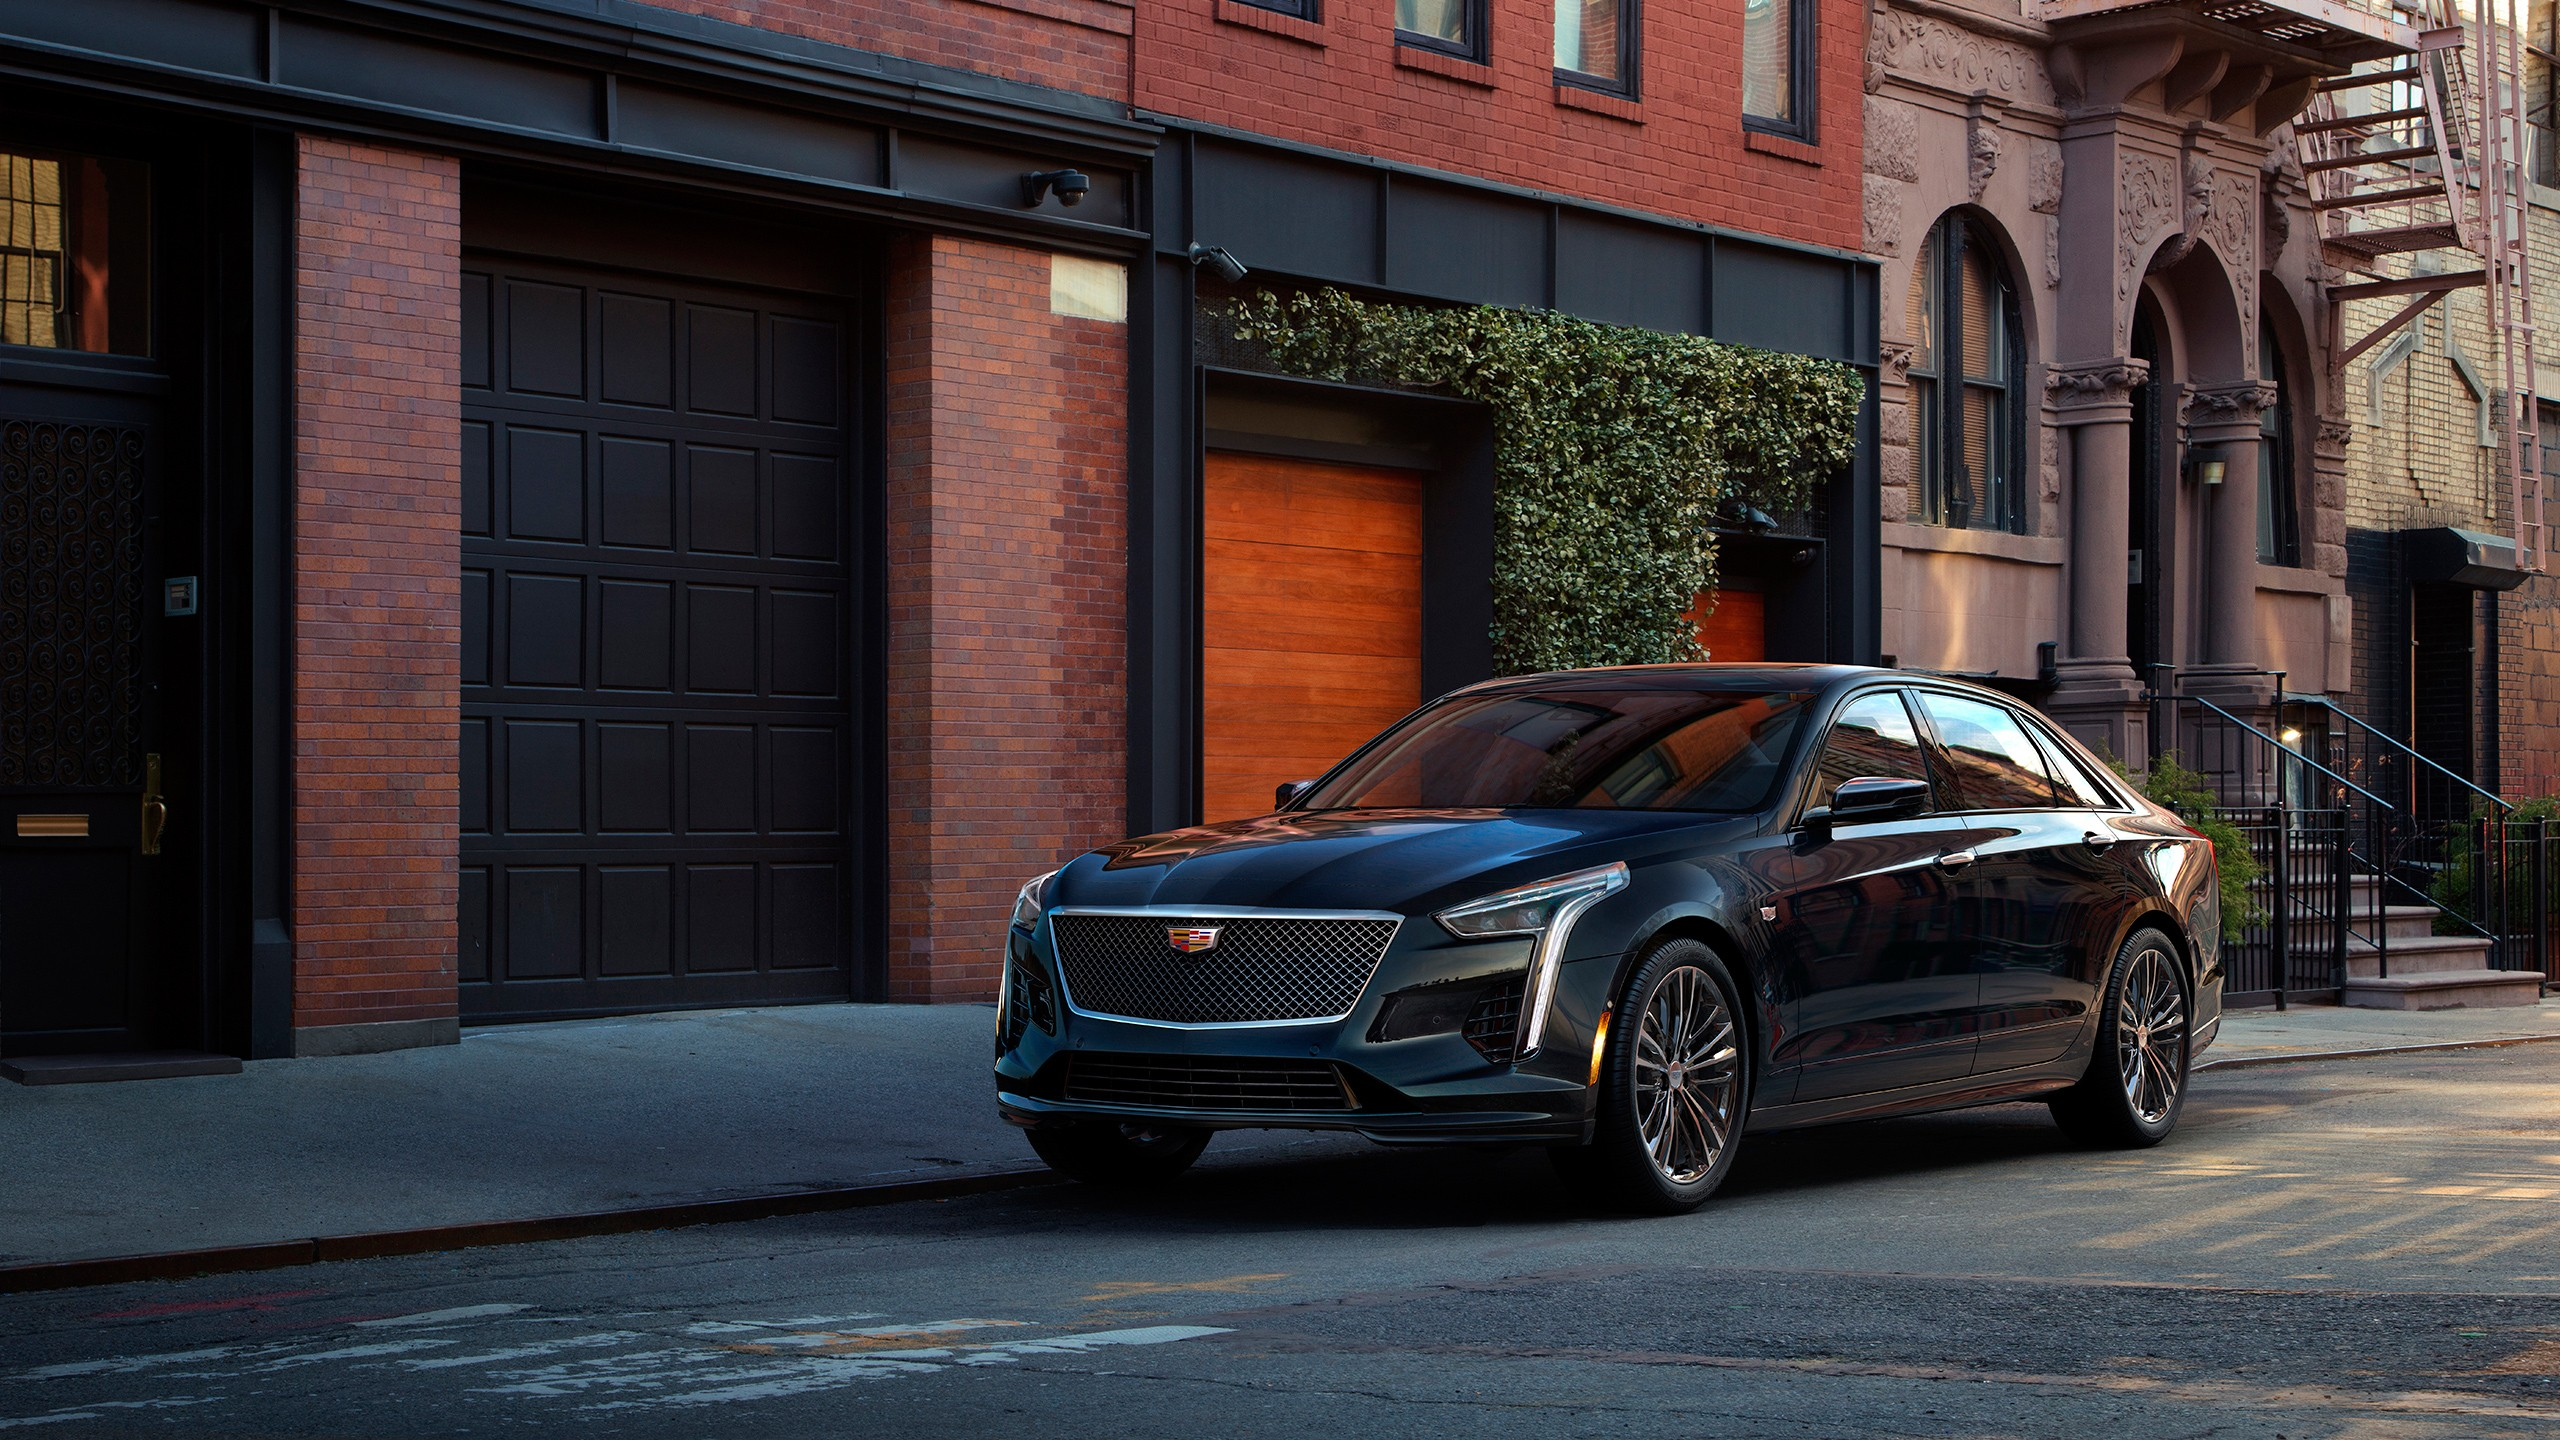 2019 Cadillac CT6 V Sport 2 Wallpaper | HD Car Wallpapers ...